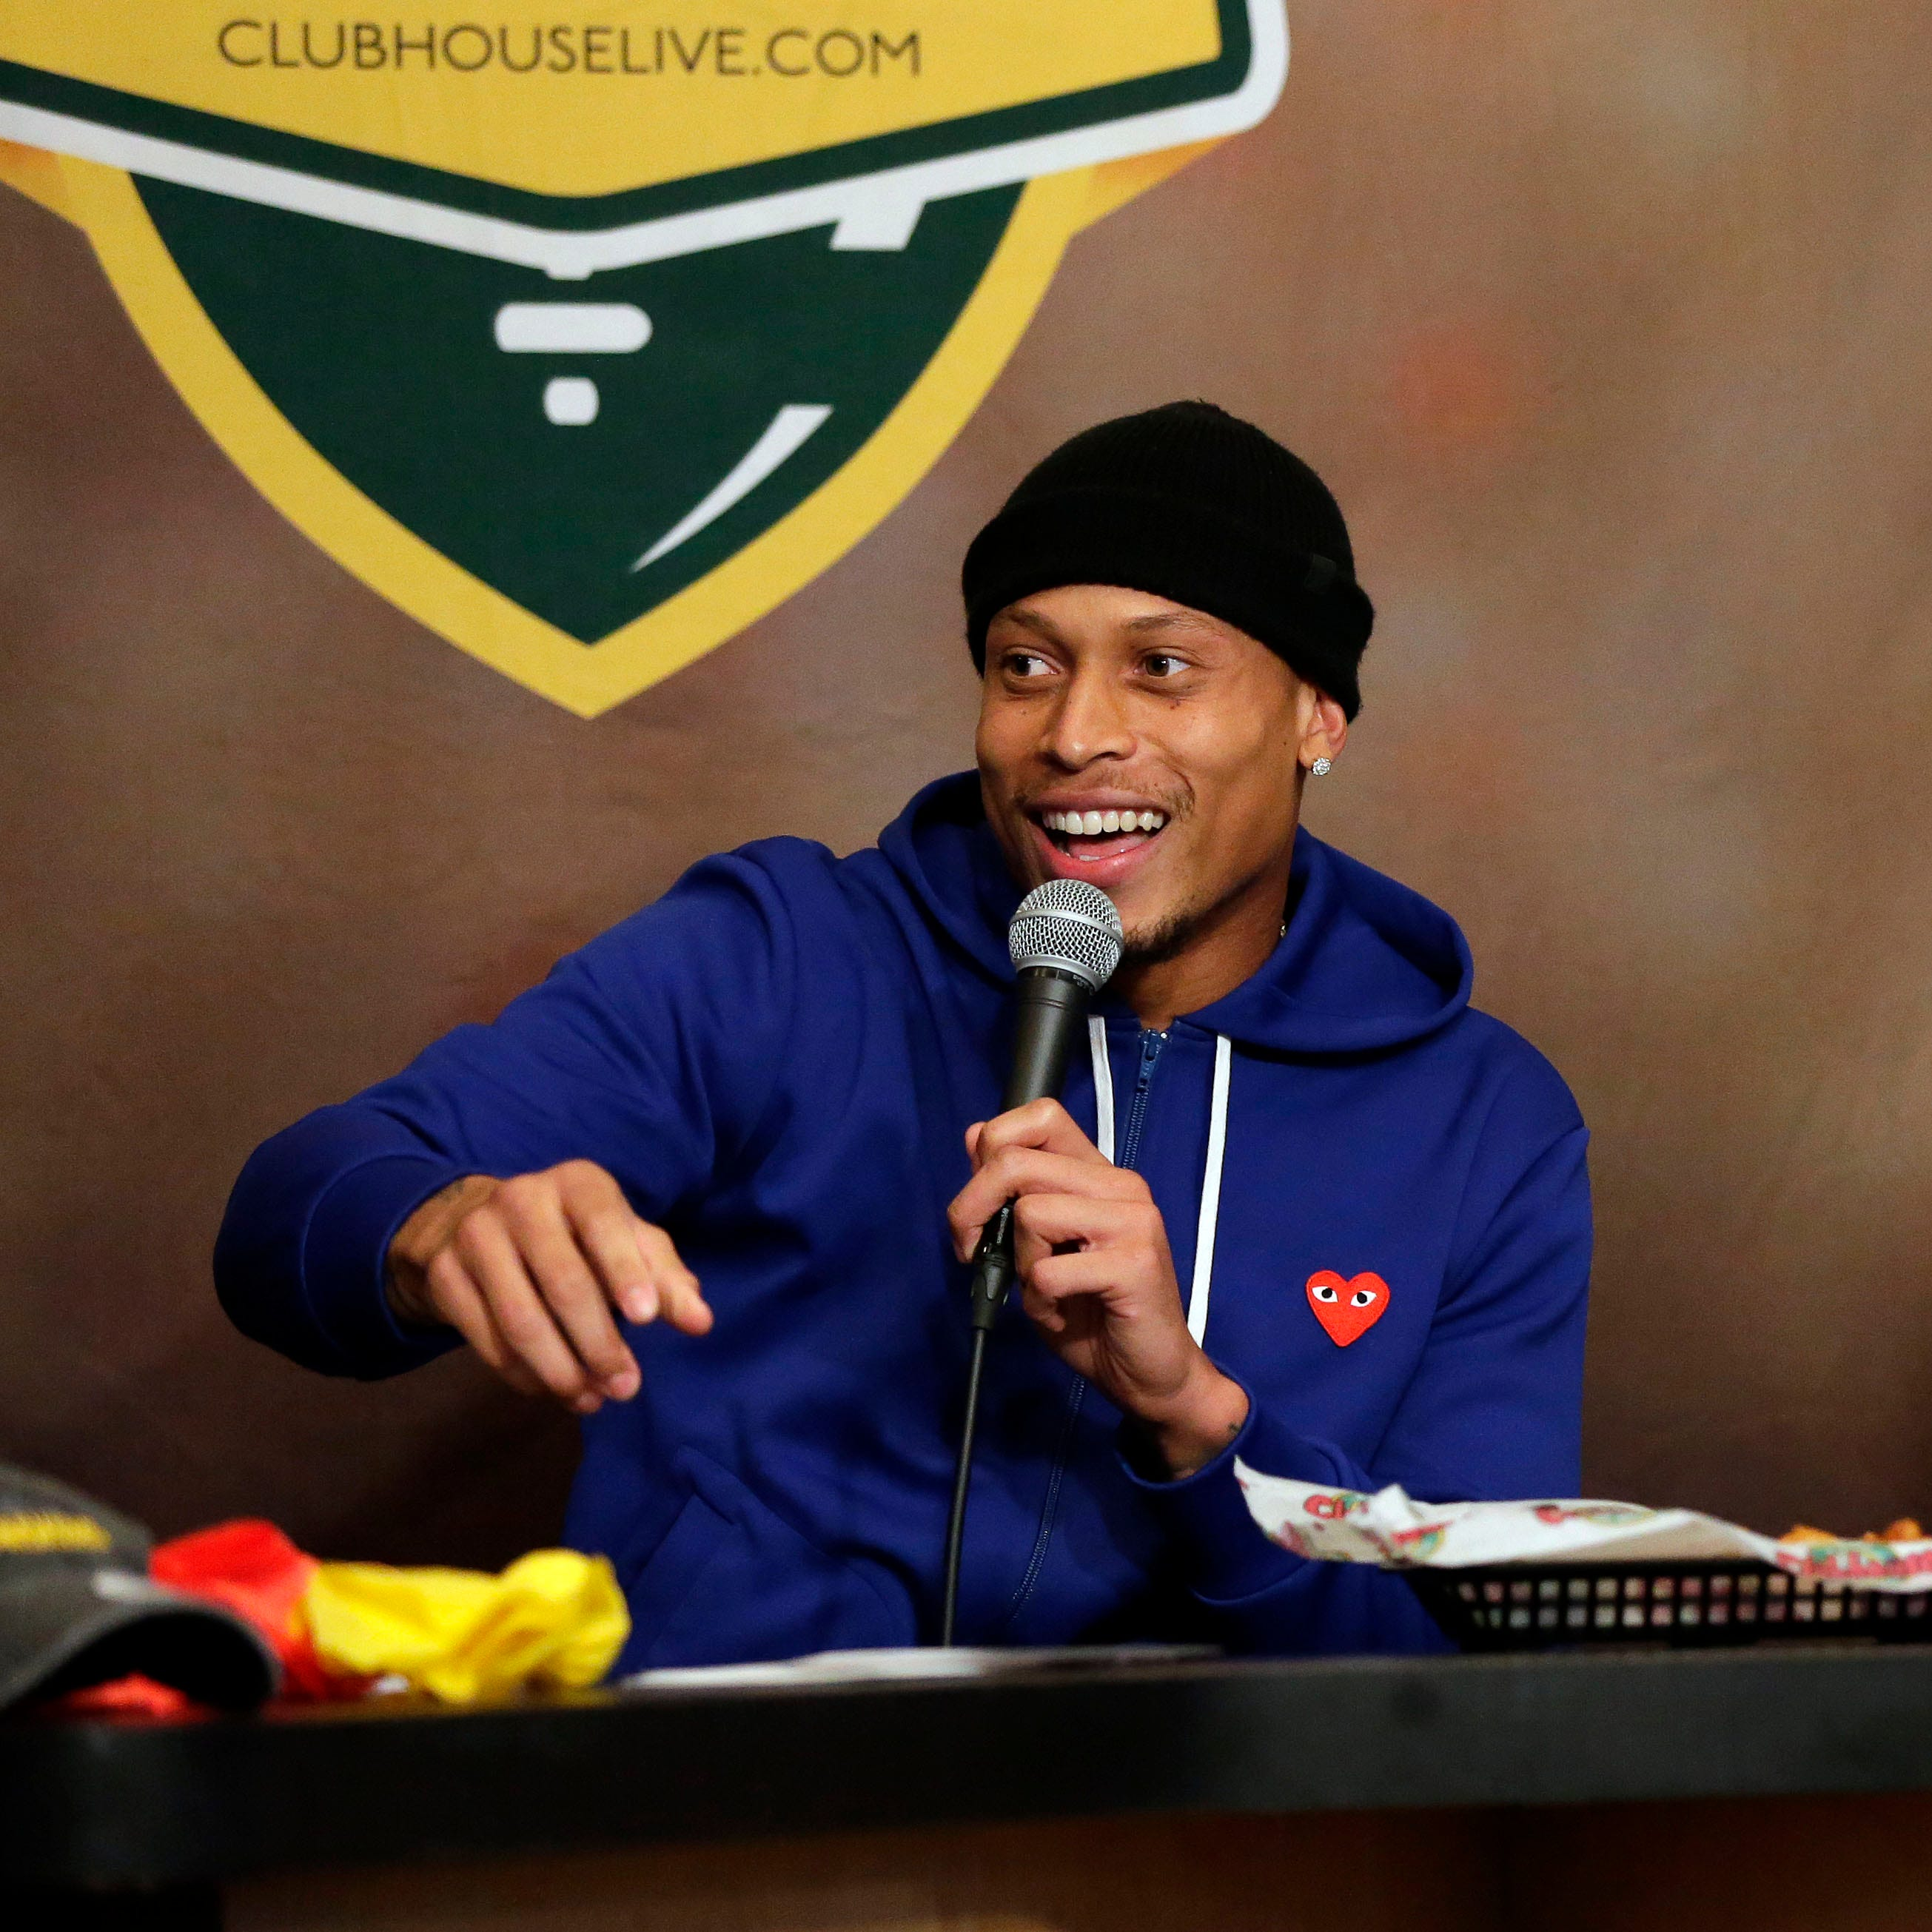 Packers' Josh Jones on Clubhouse Live: Defense has shown championship flashes